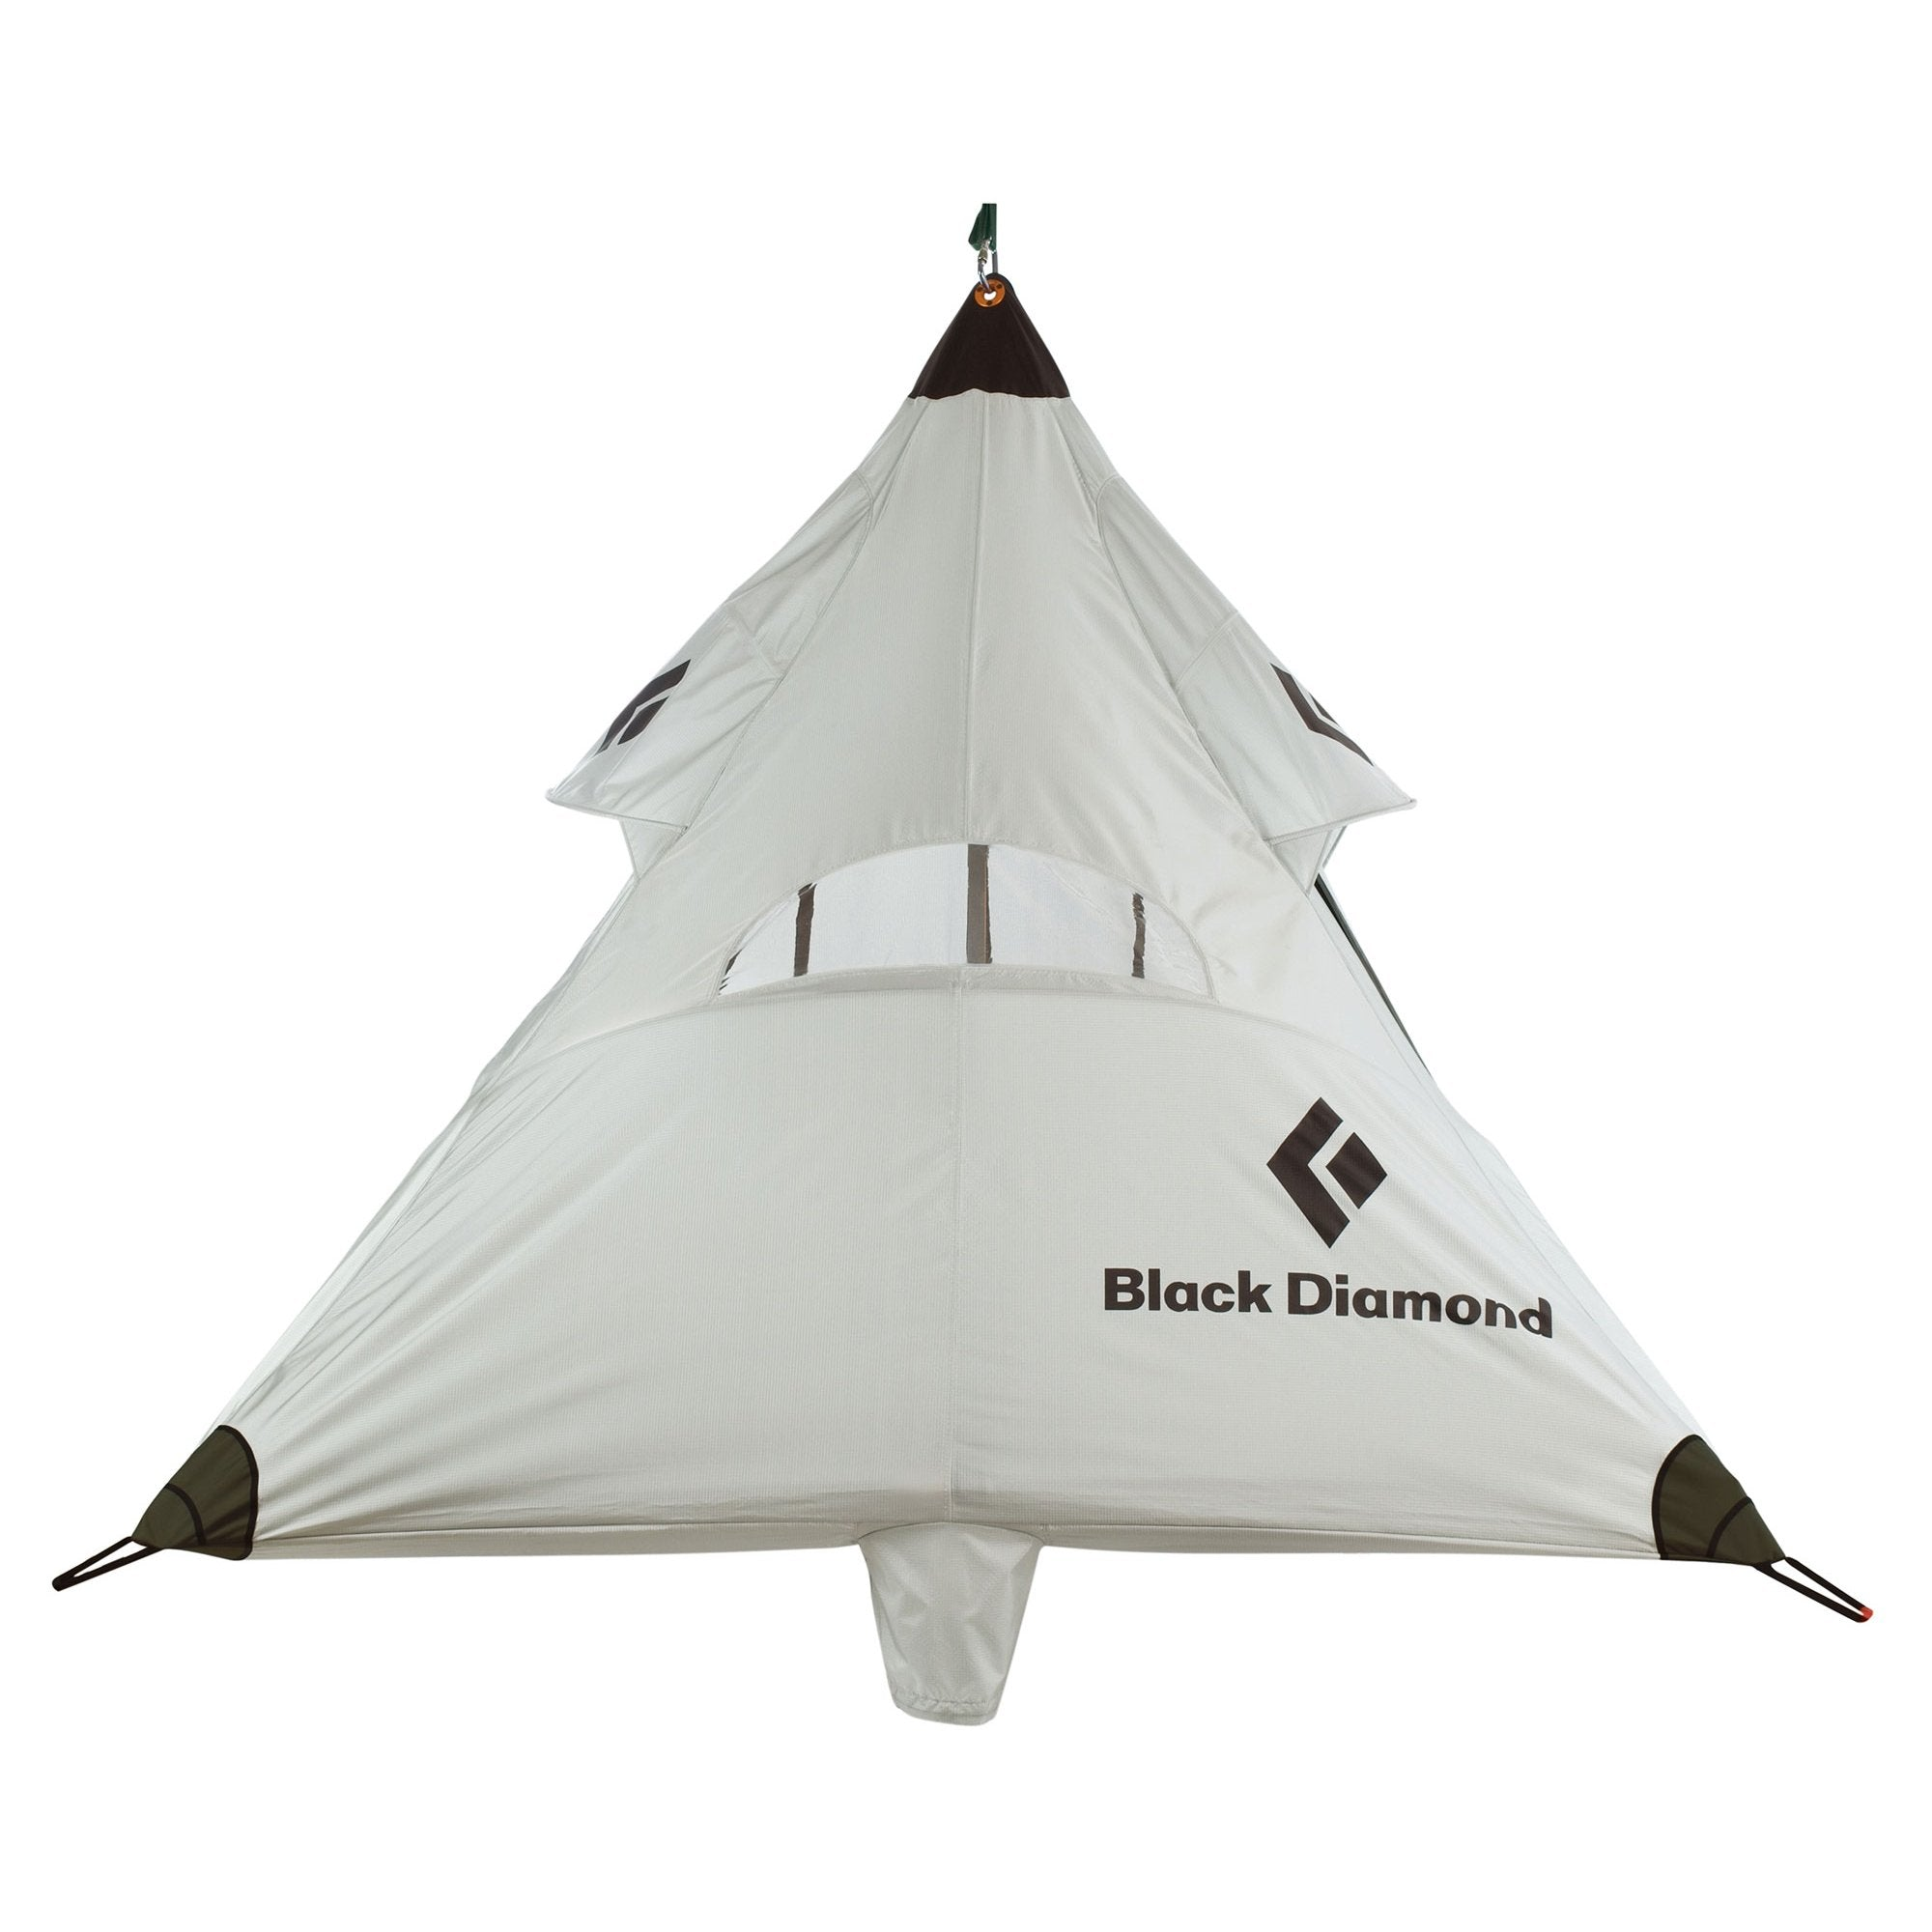 Black Diamond Deluxe Cliff Cabana Double Fly, front view shown erect in white colour